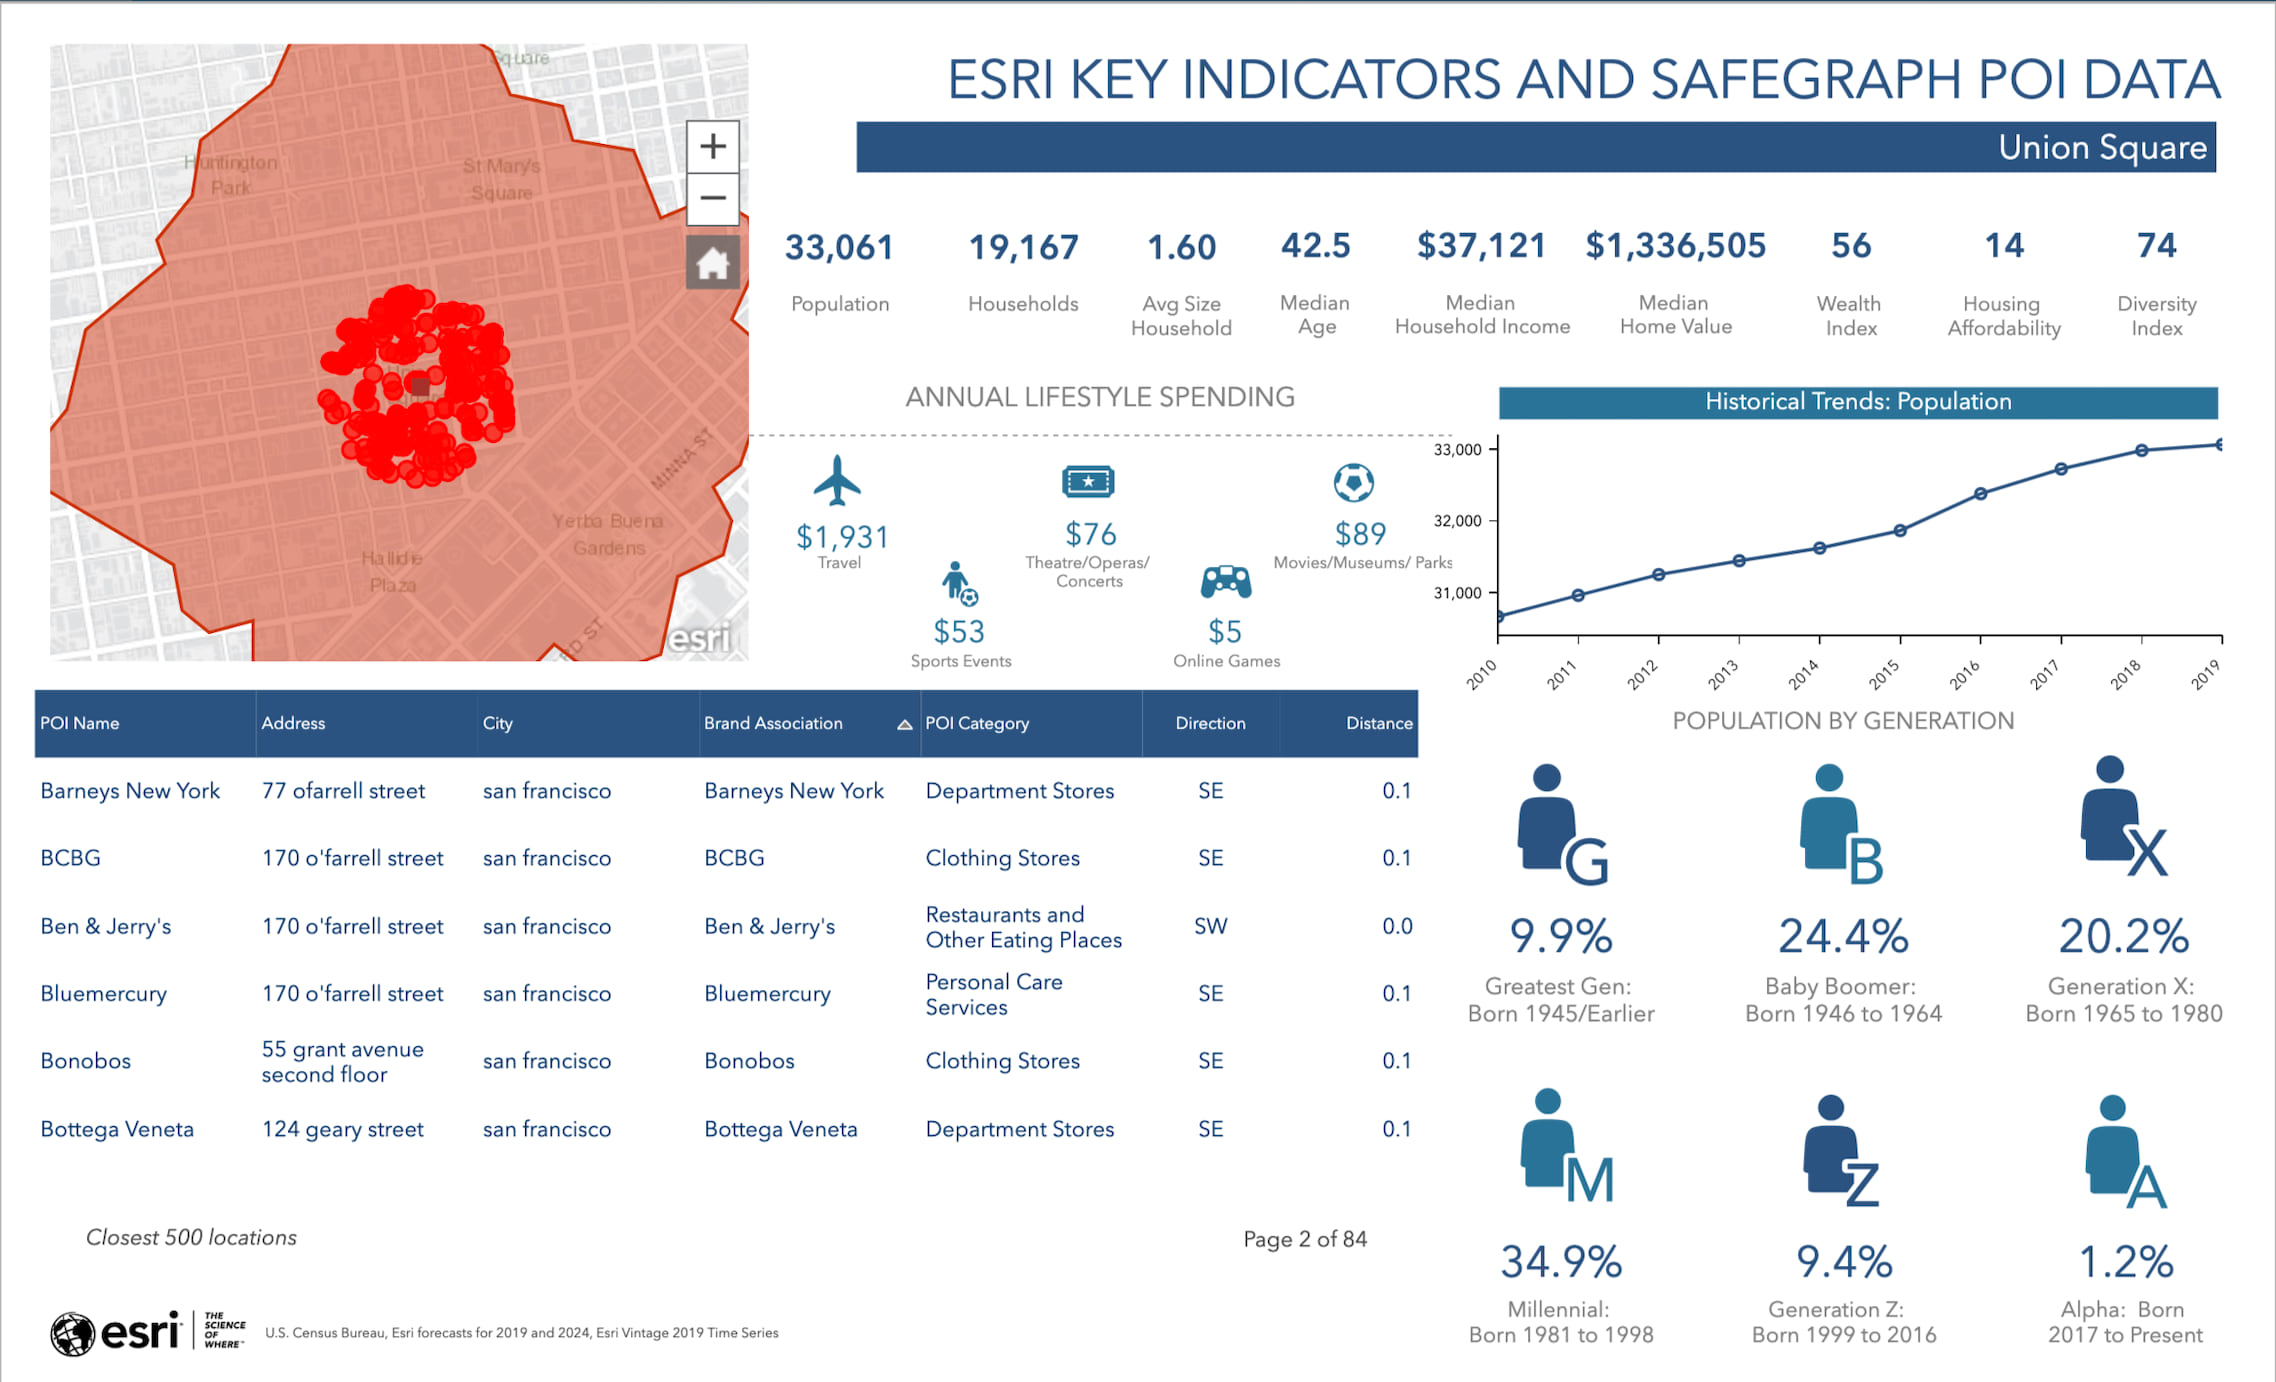 ArcGIS Business Analyst Infographic with a map and key facts for points of interest in San Francisco.